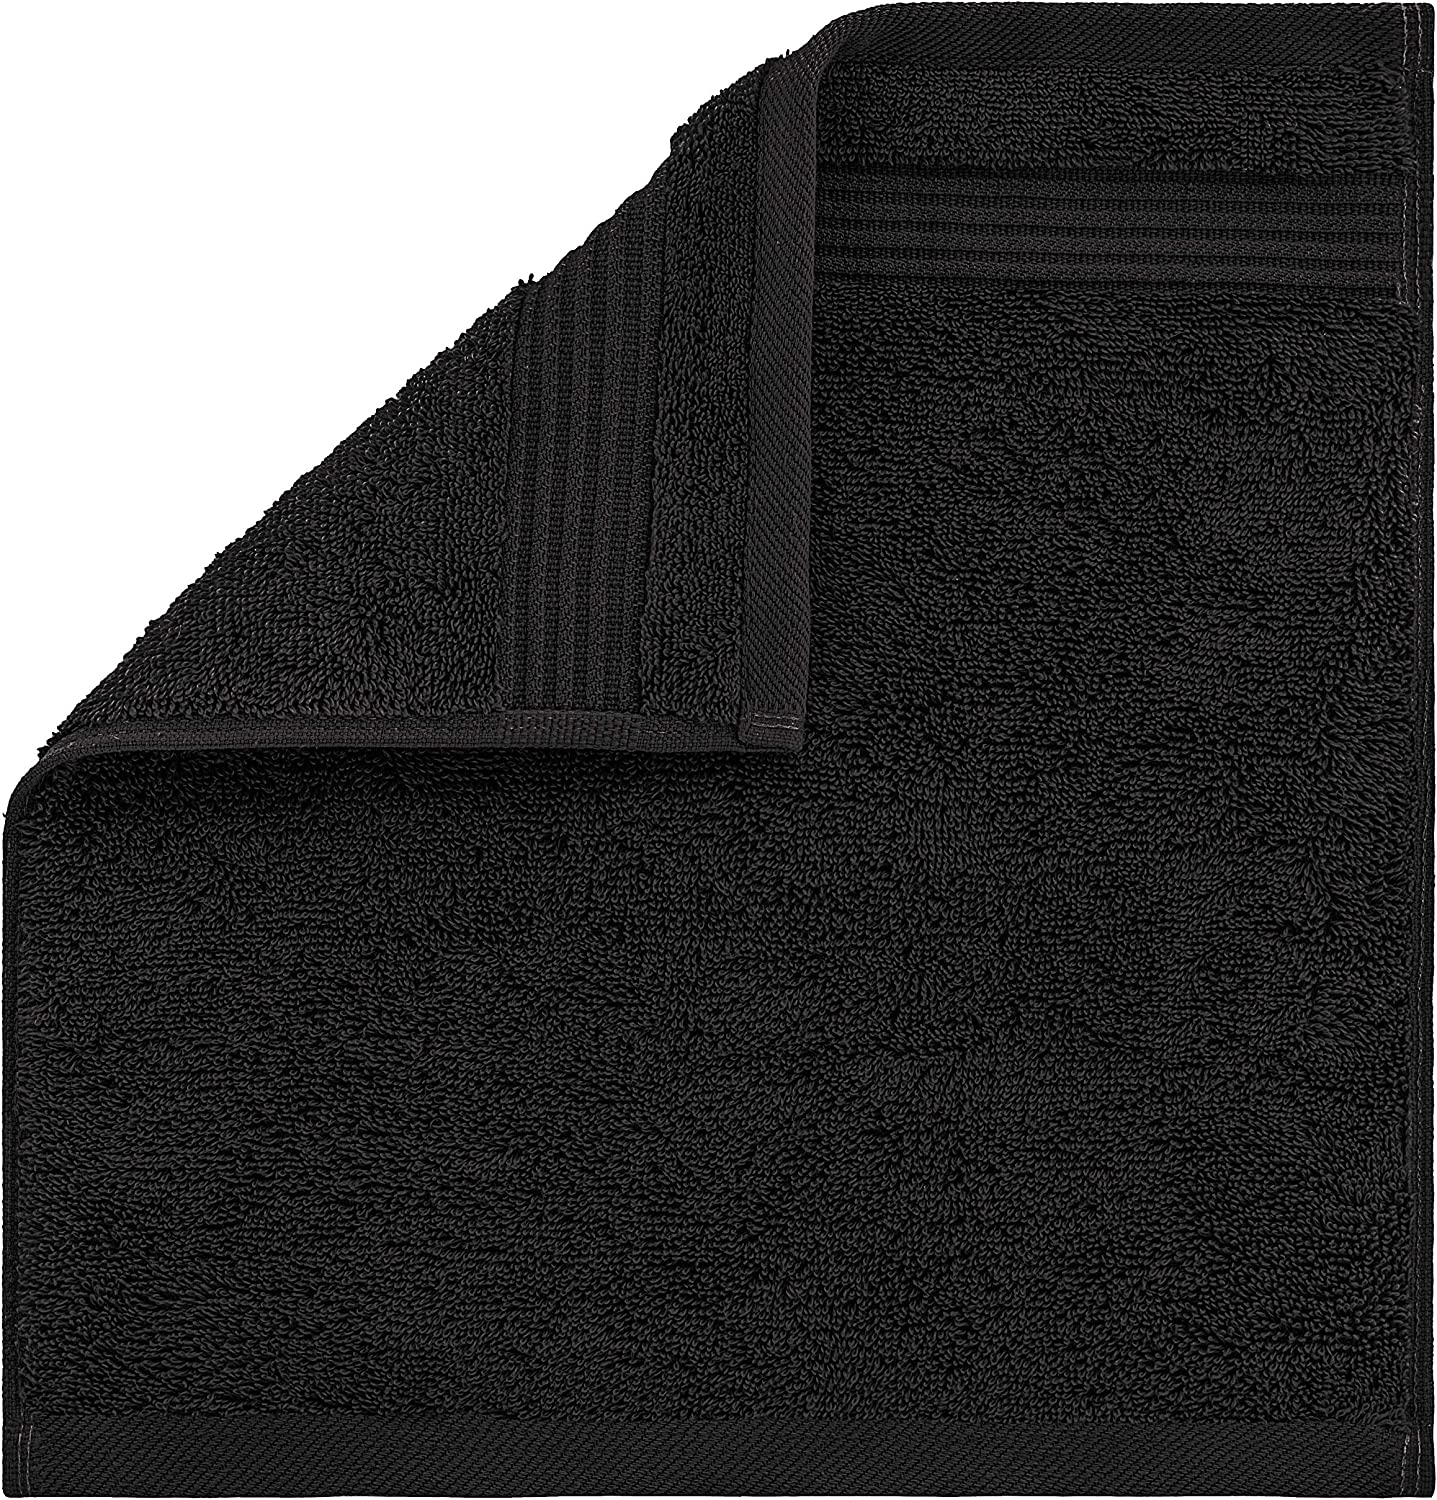 Facial Towelettes by United Home Textile Luxury Ring Spun Cotton Washcloths for Easy Care Extra Soft and Absorbent 4 Pack Washcloth Set, Coal Black Fingertip Towels